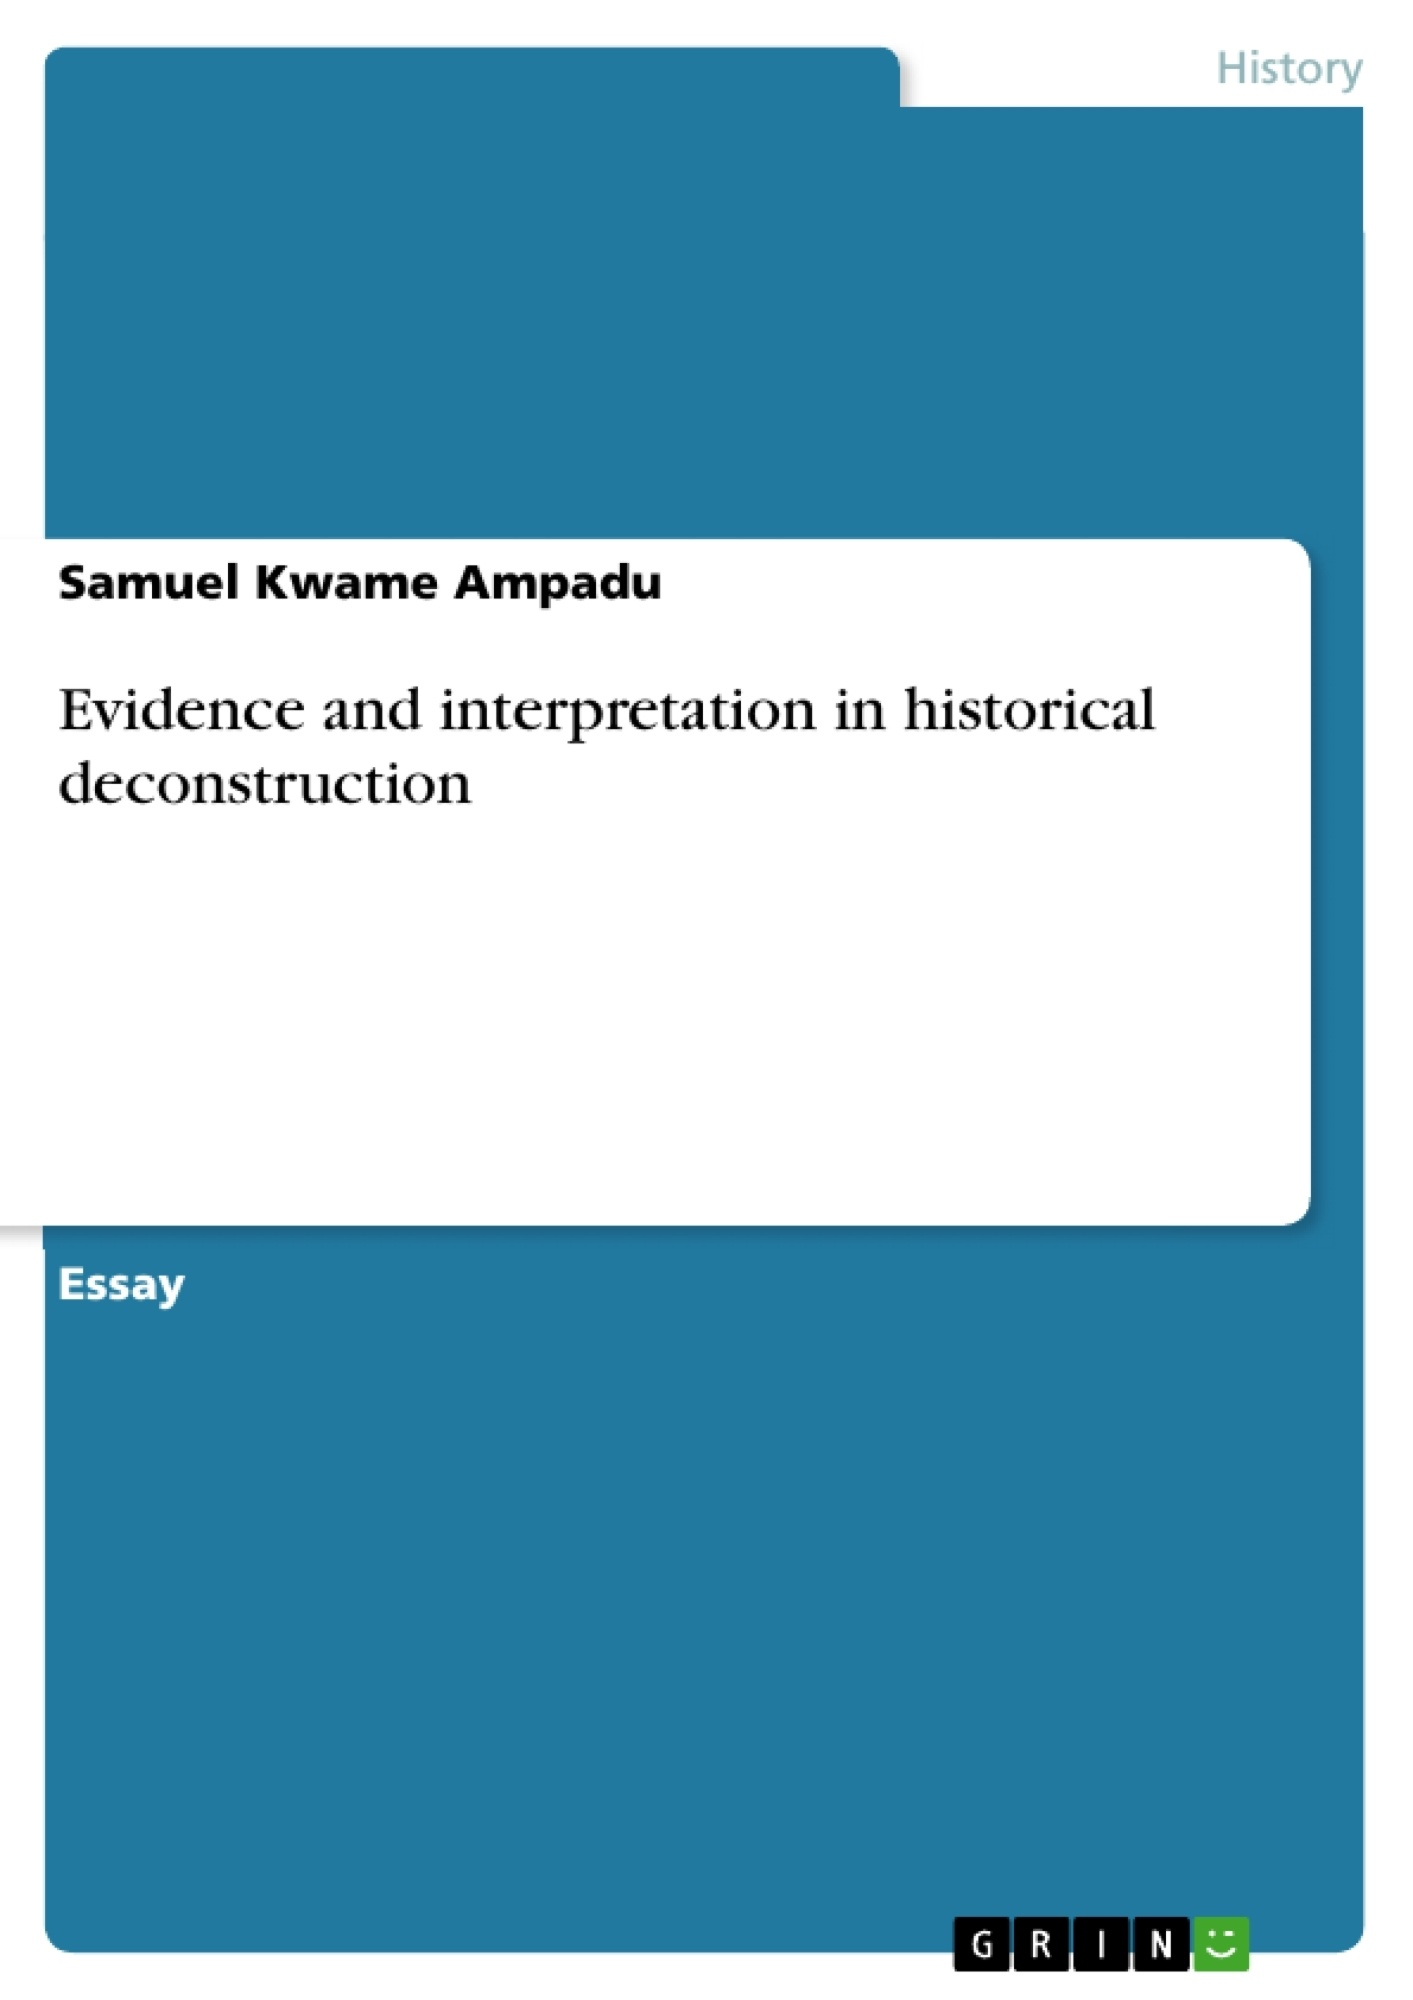 Title: Evidence and interpretation in historical deconstruction